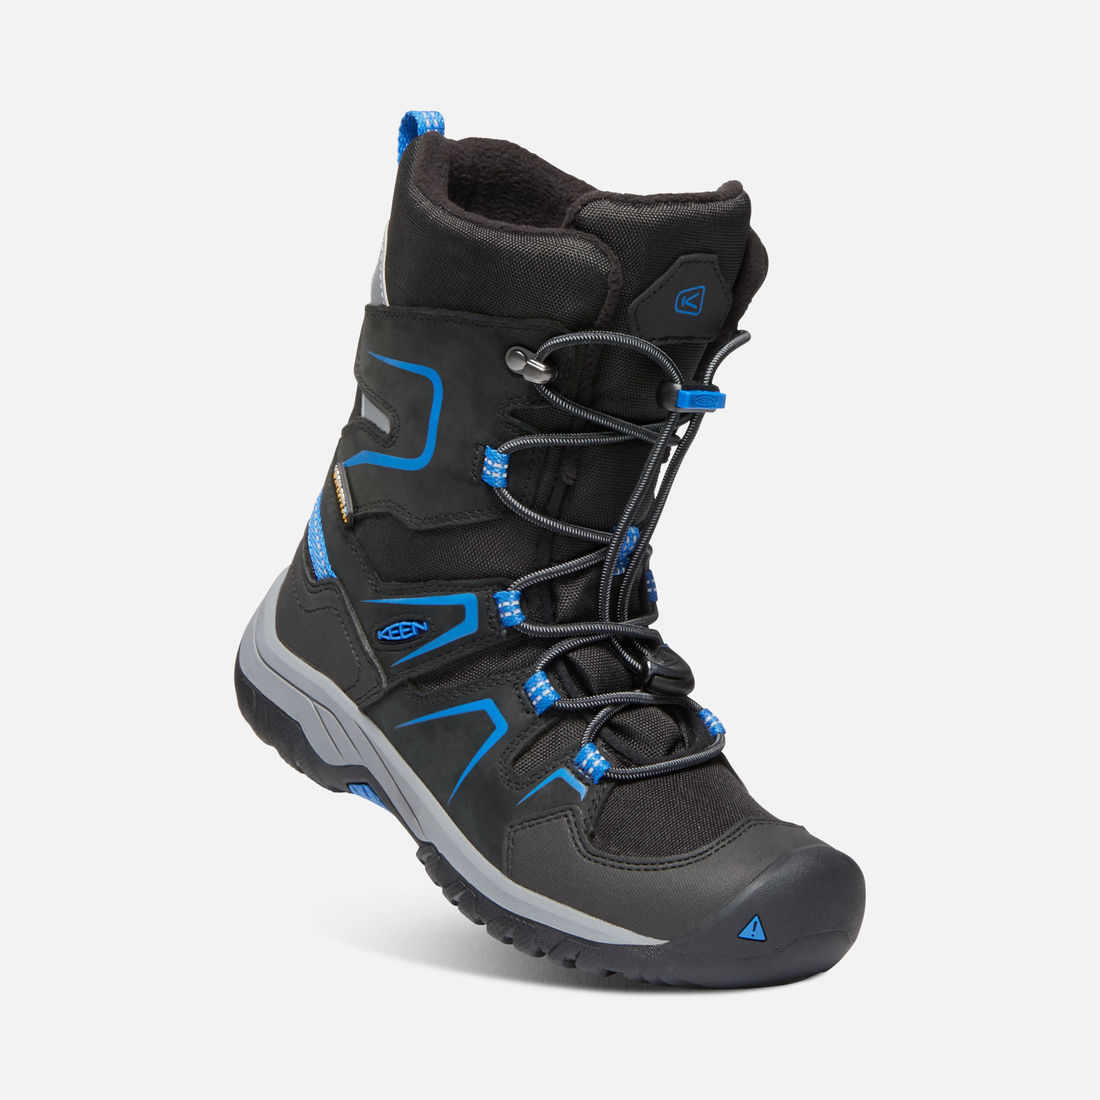 KEEN LEVO WATERPROOF WINTER BOOT černé vel.39